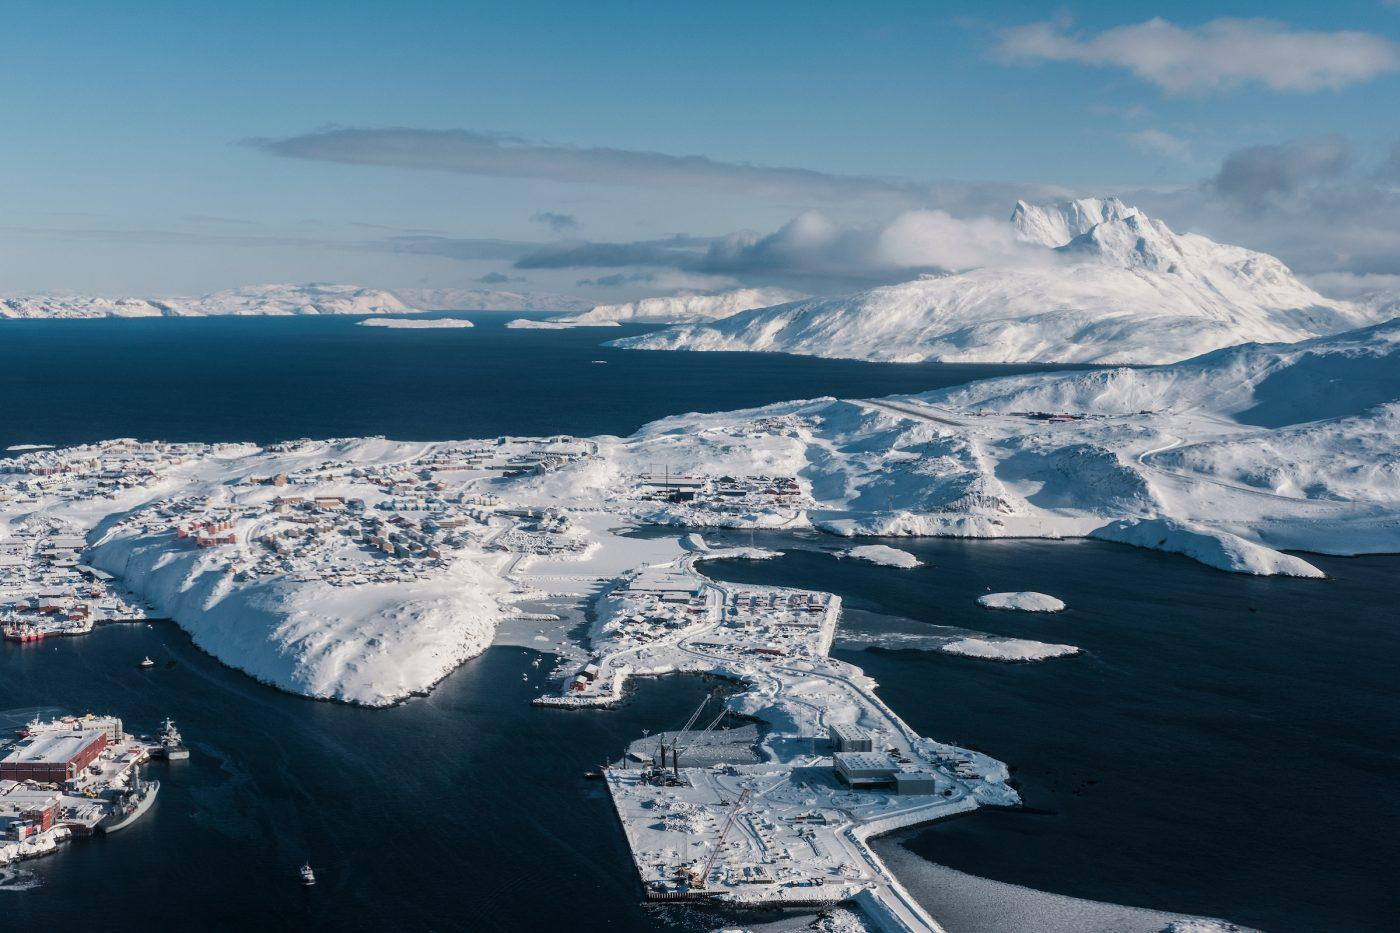 Sunny Spring Aerial View over Nuuk, The Capital Of Greenland. Photo by Petter Cohen, Xtravel